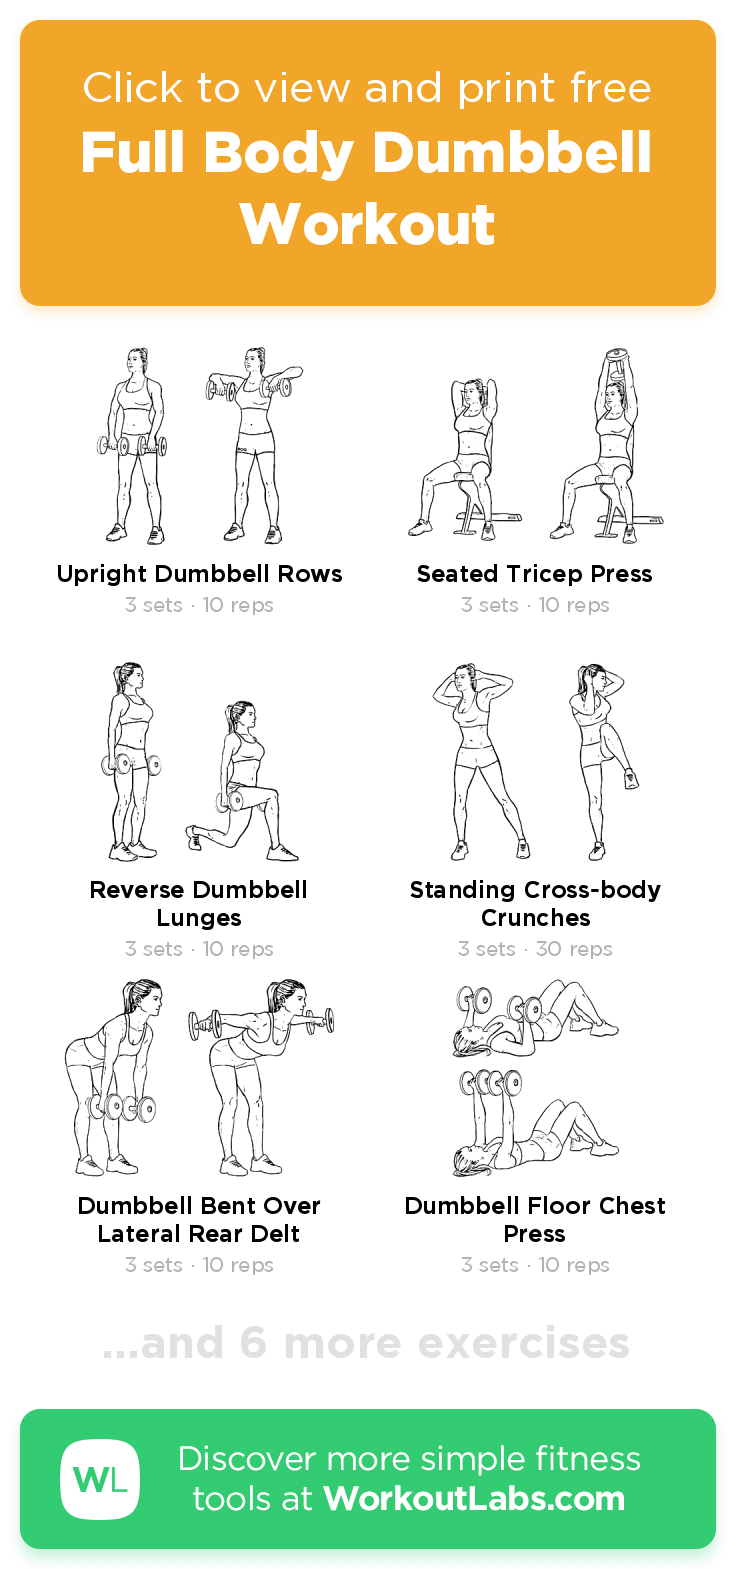 Full Body Dumbbell Workout · Free workout by WorkoutLabs Fit